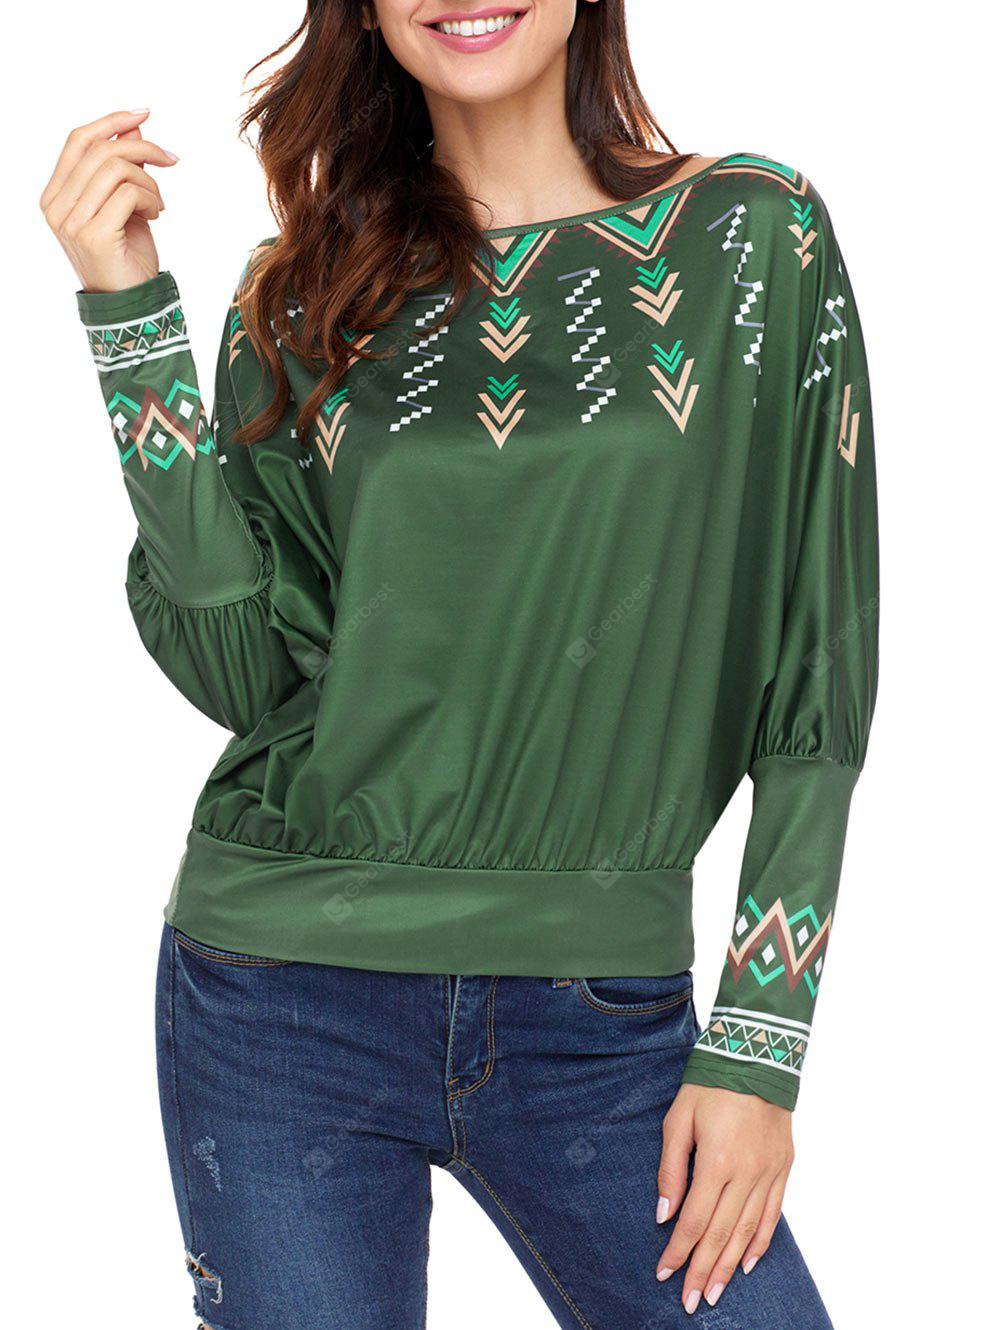 ARMY GREEN, Apparel, Women's Clothing, Blouses